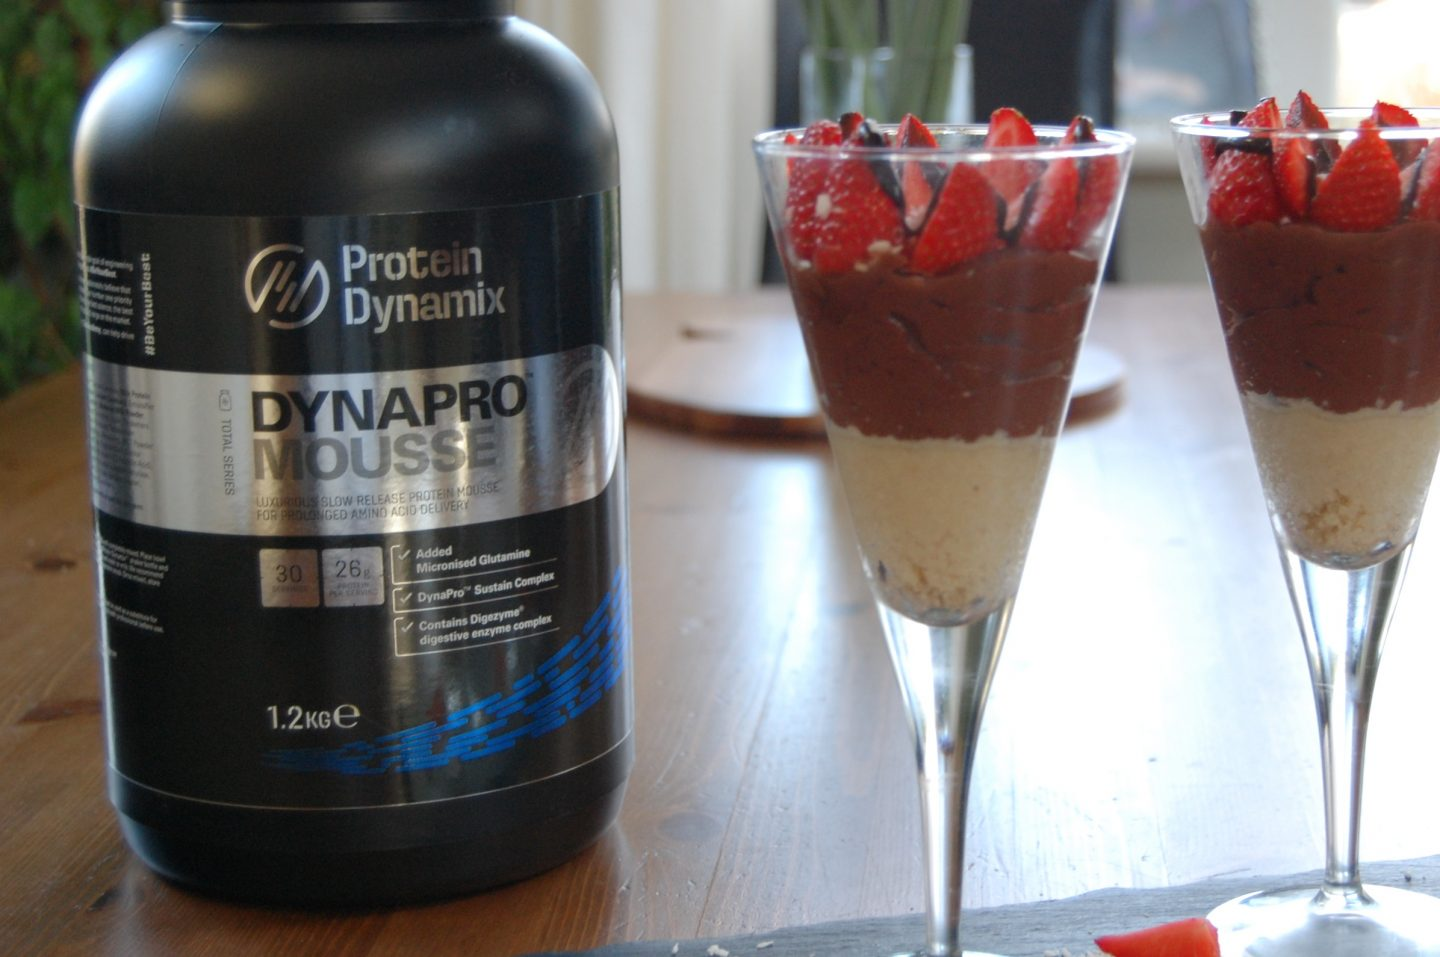 DynaPro Mousse Review & Protein Cheesecake Recipe!